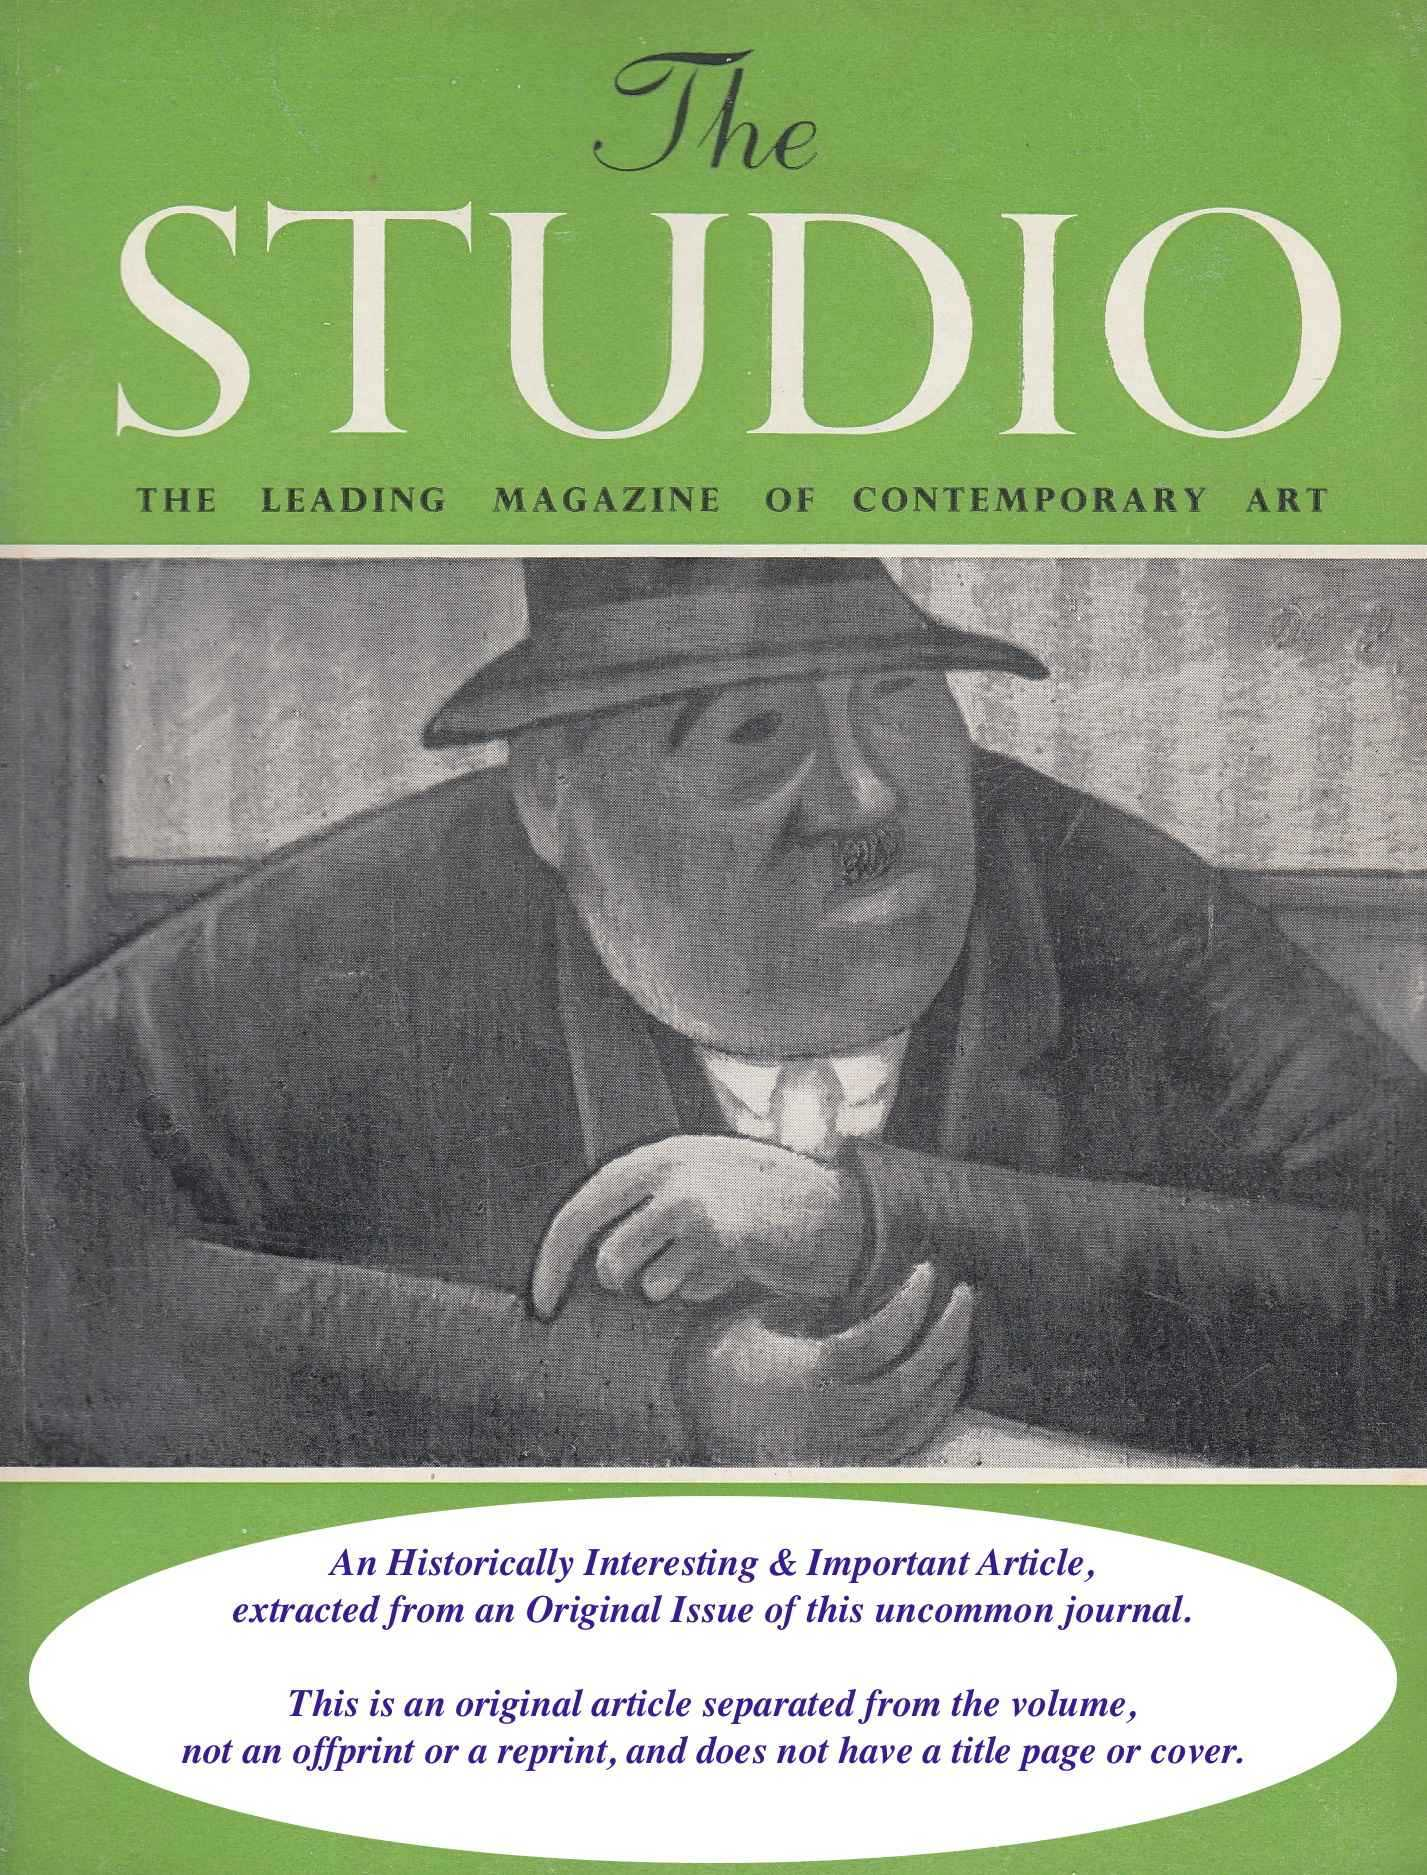 WILKINSON, NORMAN - The Royal Insttitute of Painters in Water Colours. An original article from the The Studio magazine, 1944.